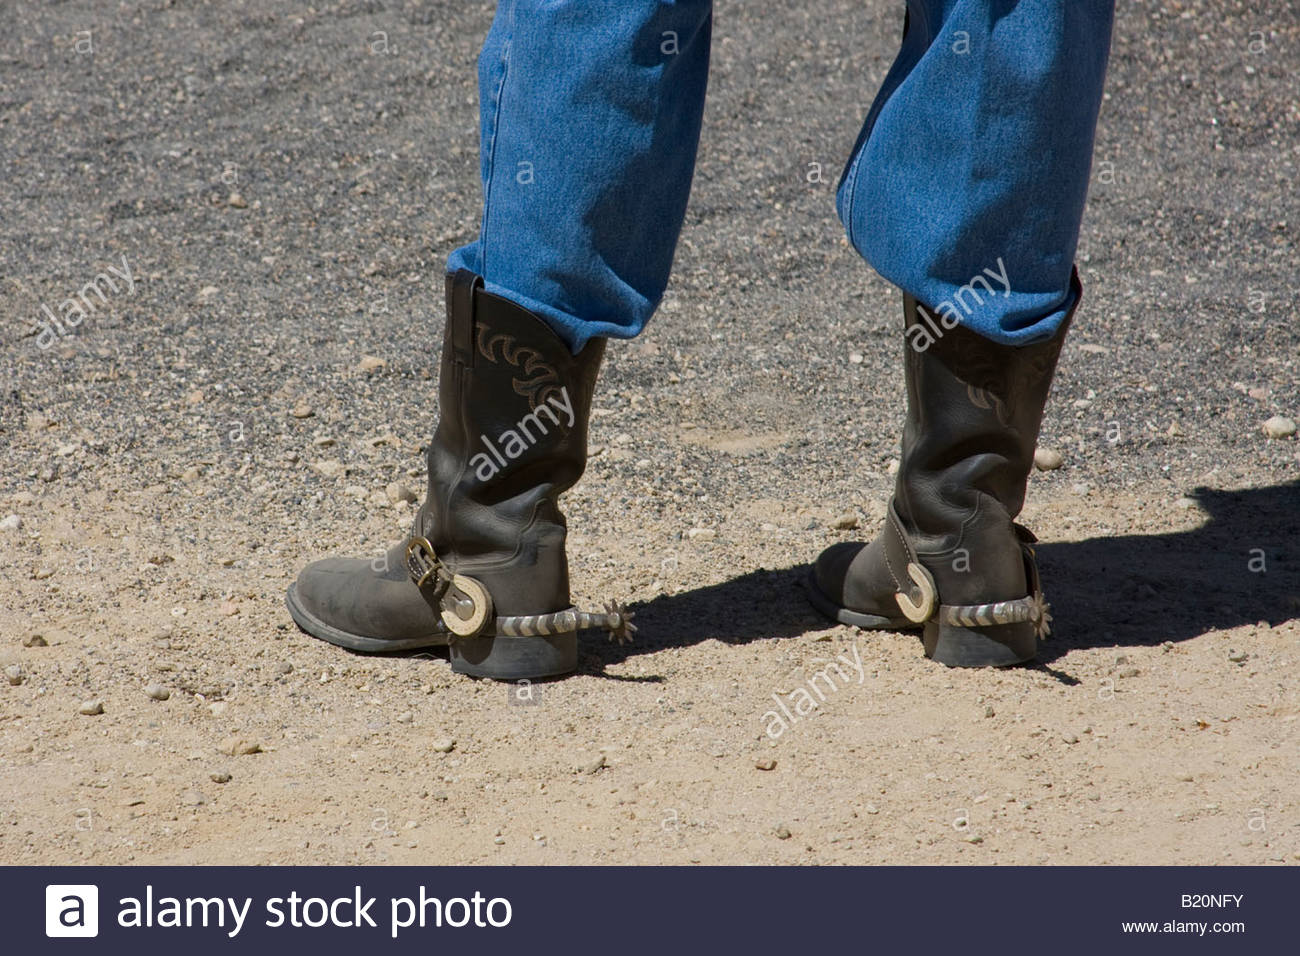 Black leather cowboy boots with spurs - Stock Image